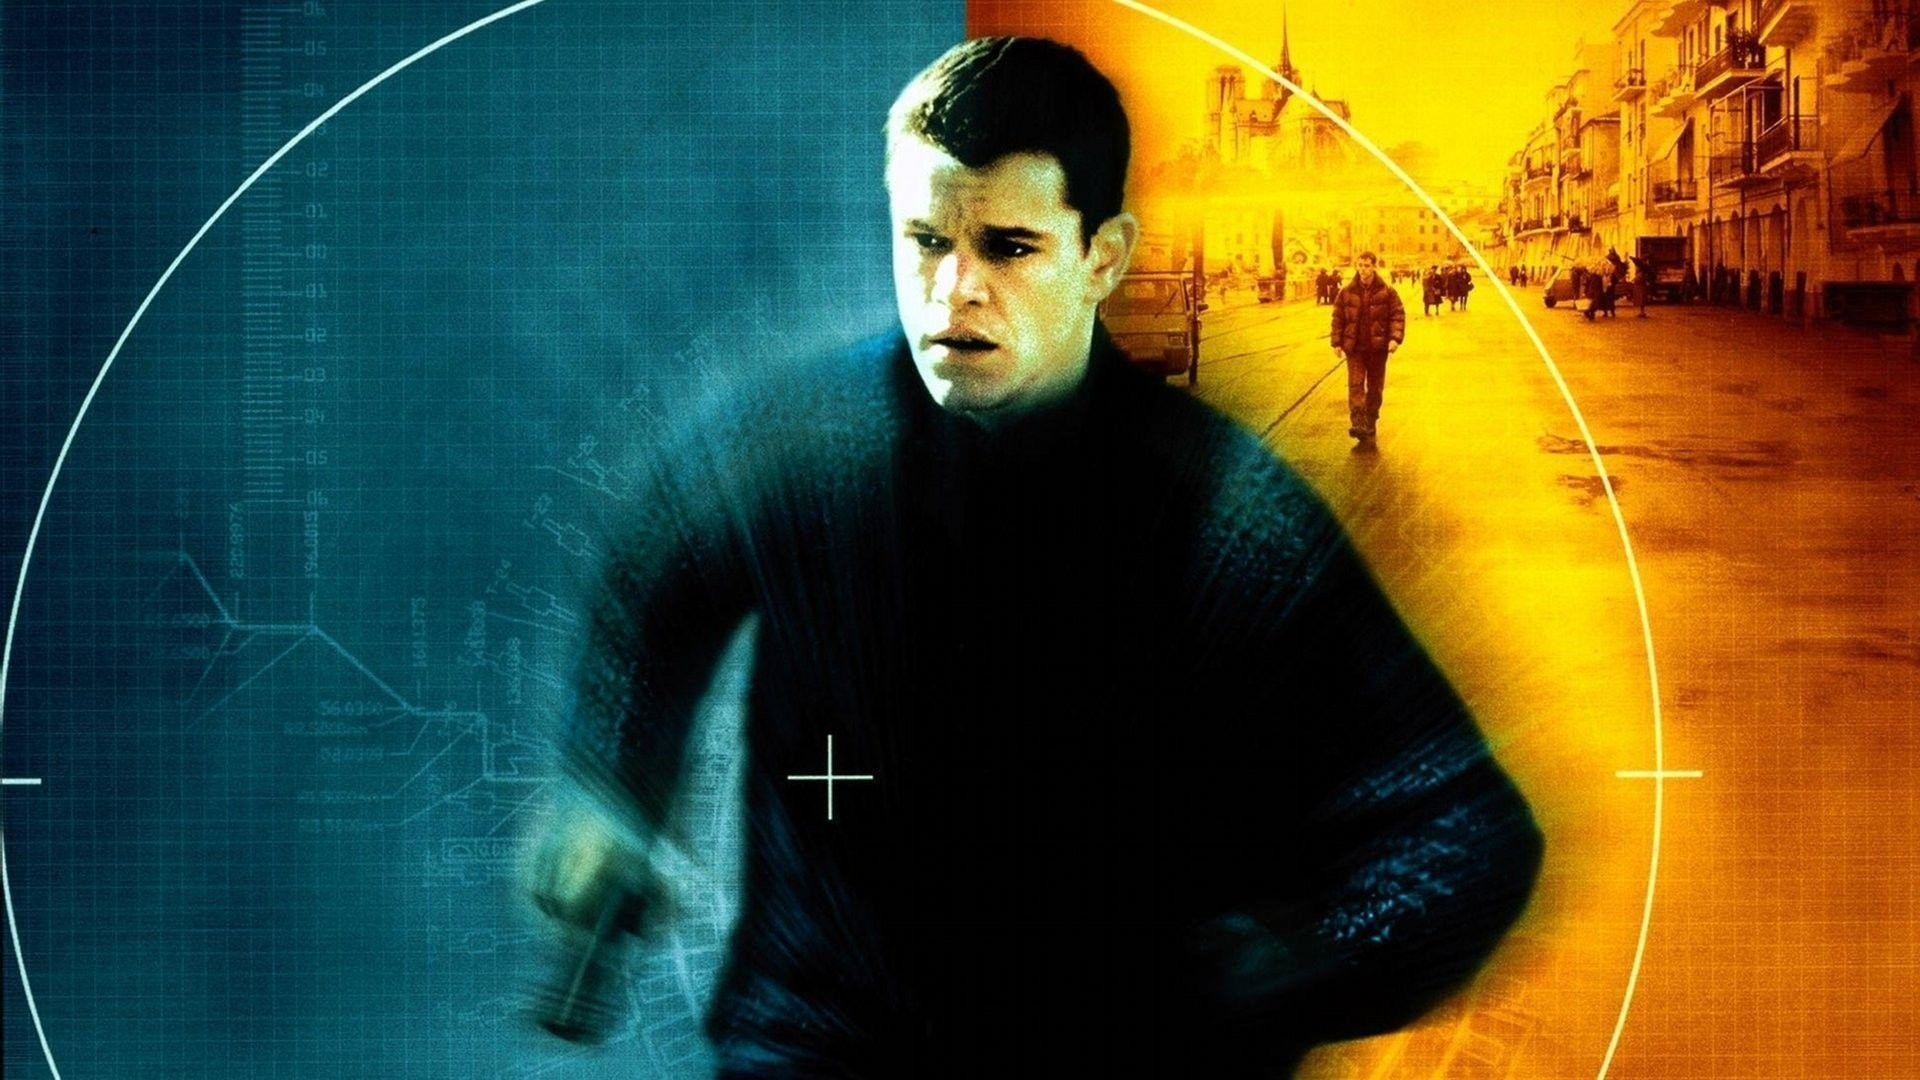 Res: 1920x1080, Bourne Identity Wallpaper - Viewing Gallery